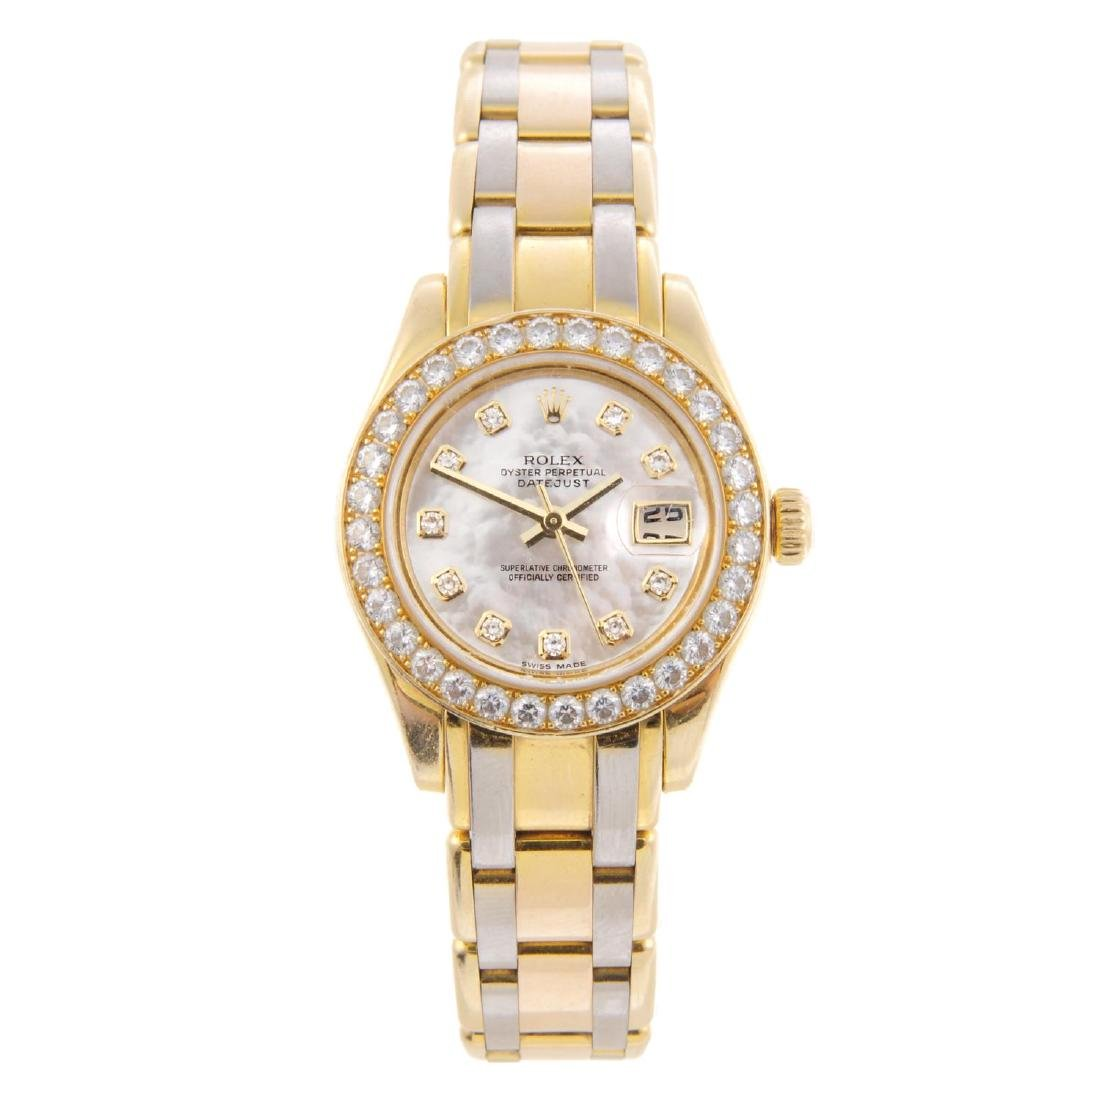 ROLEX - a lady's Oyster Perpetual Datejust Pearlmaster